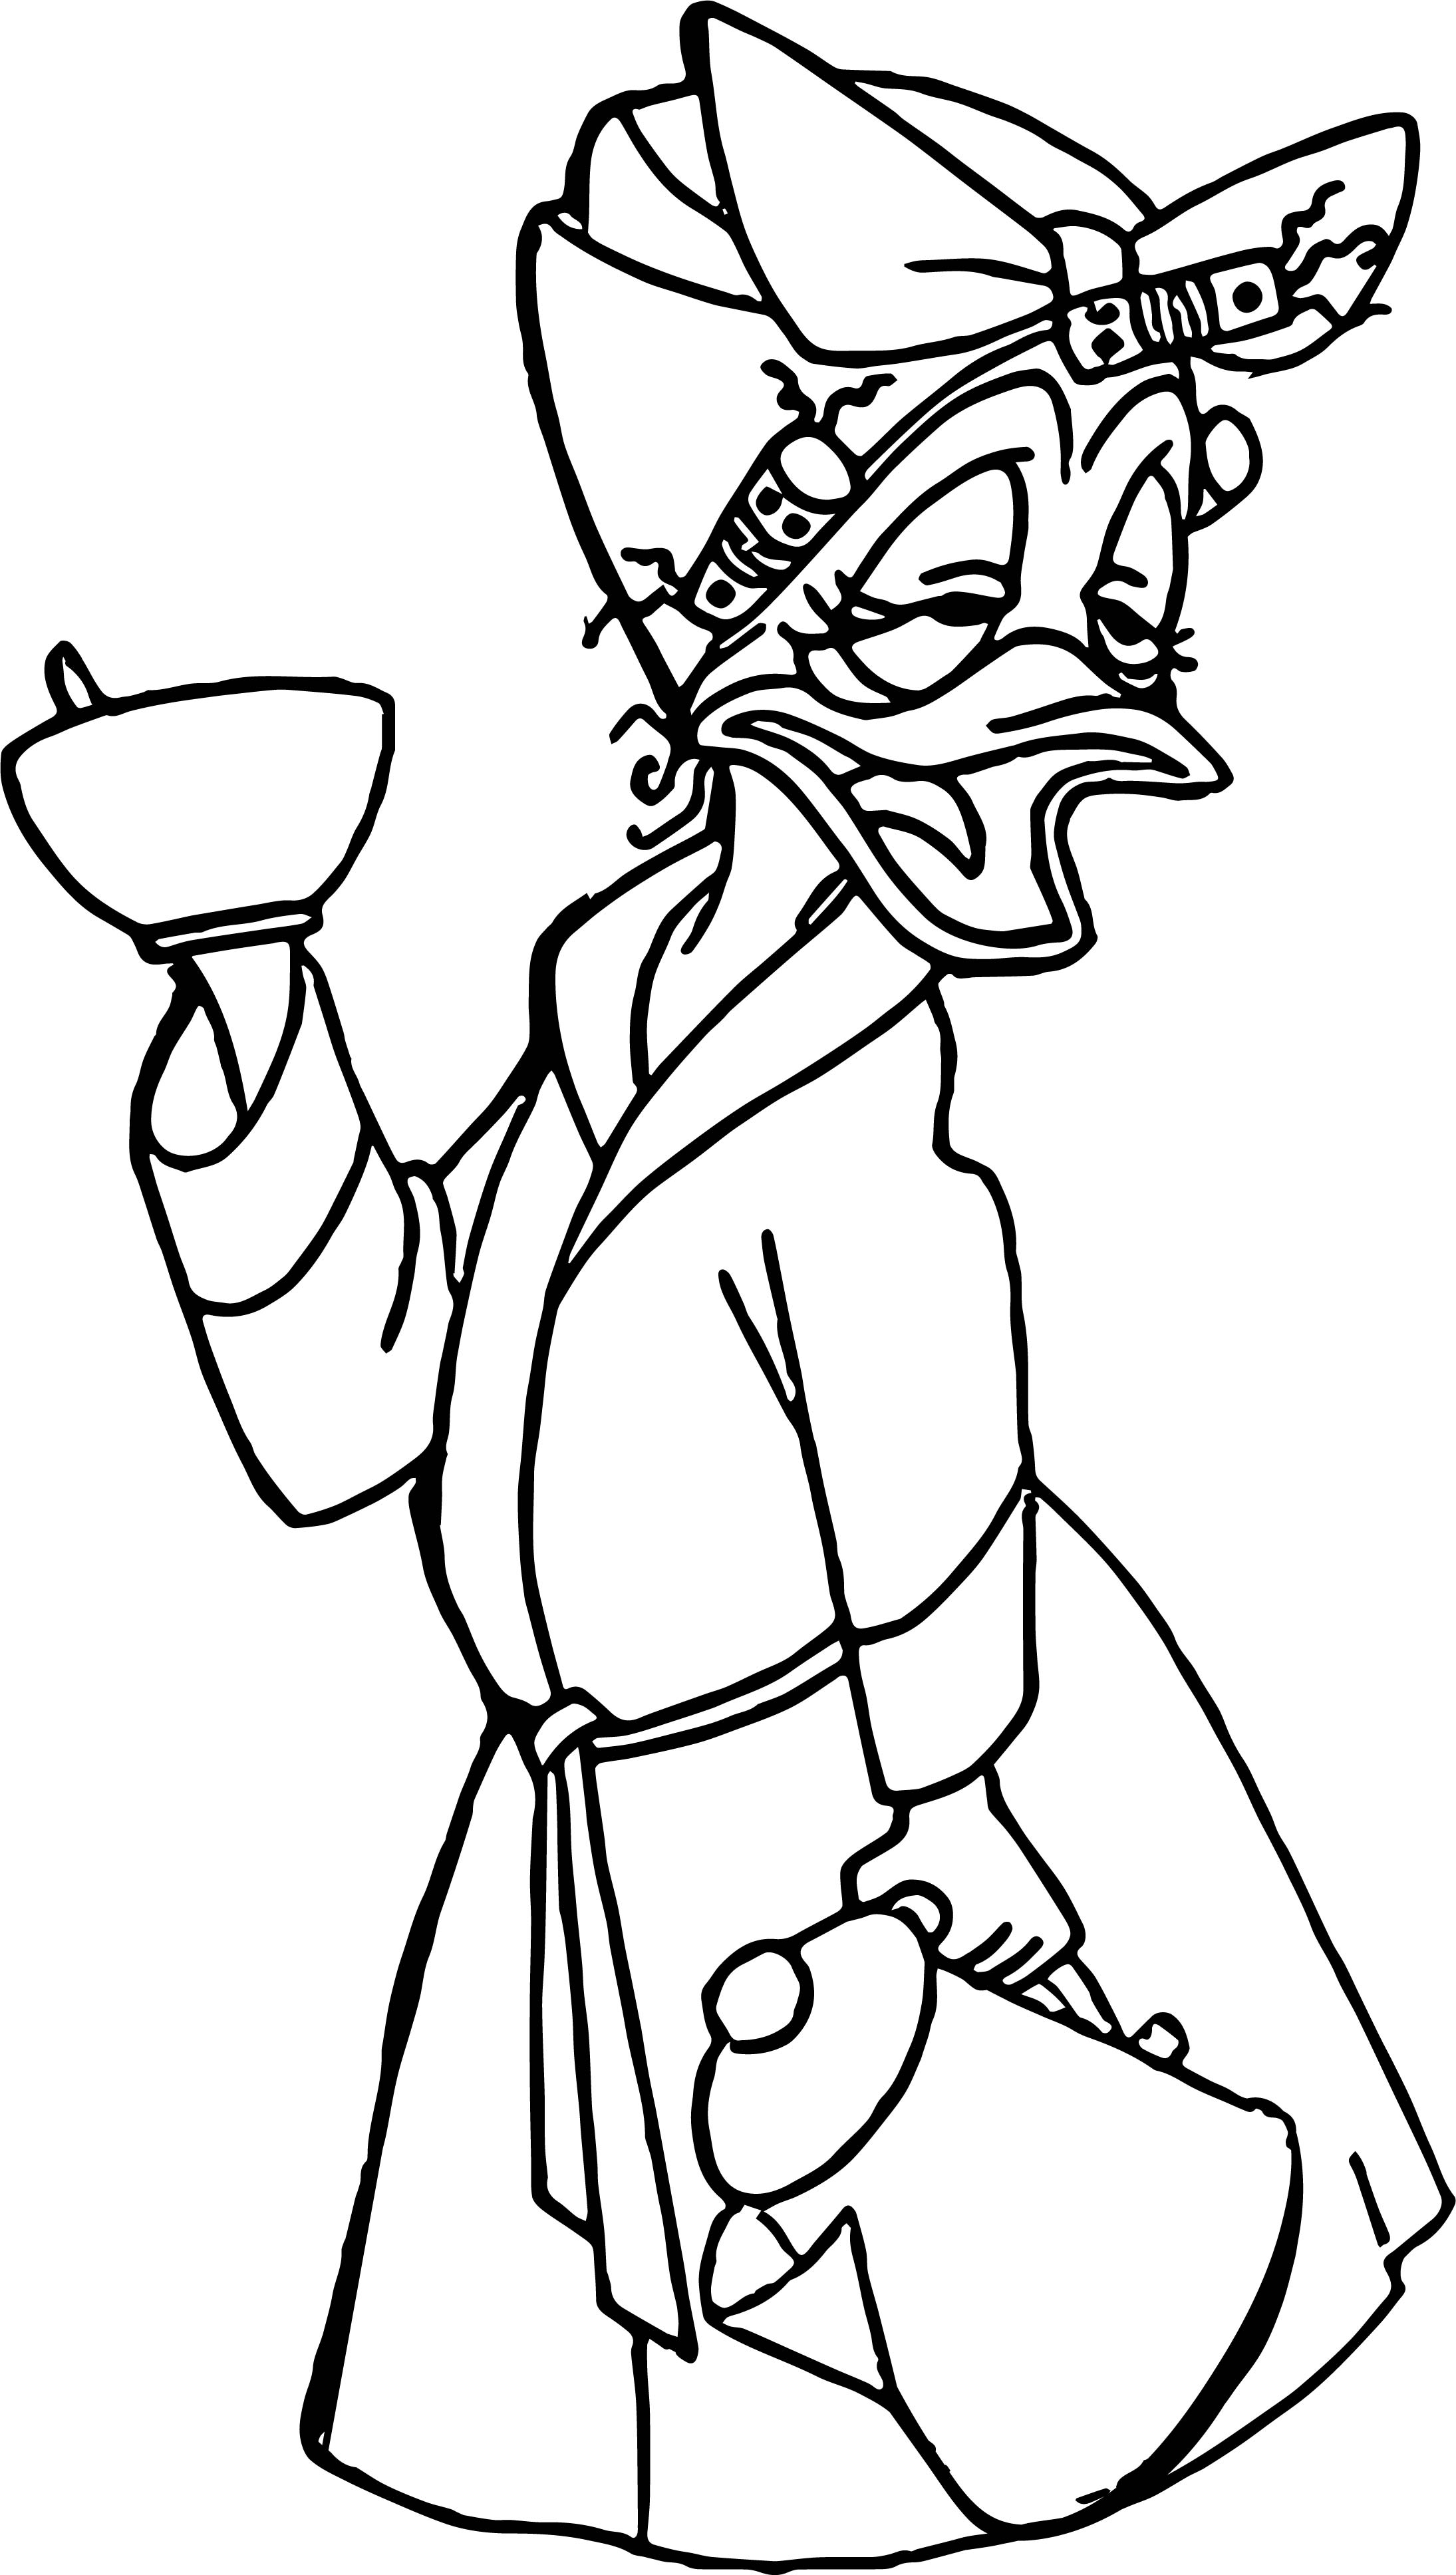 Woman Duck Fatigue Coloring Page